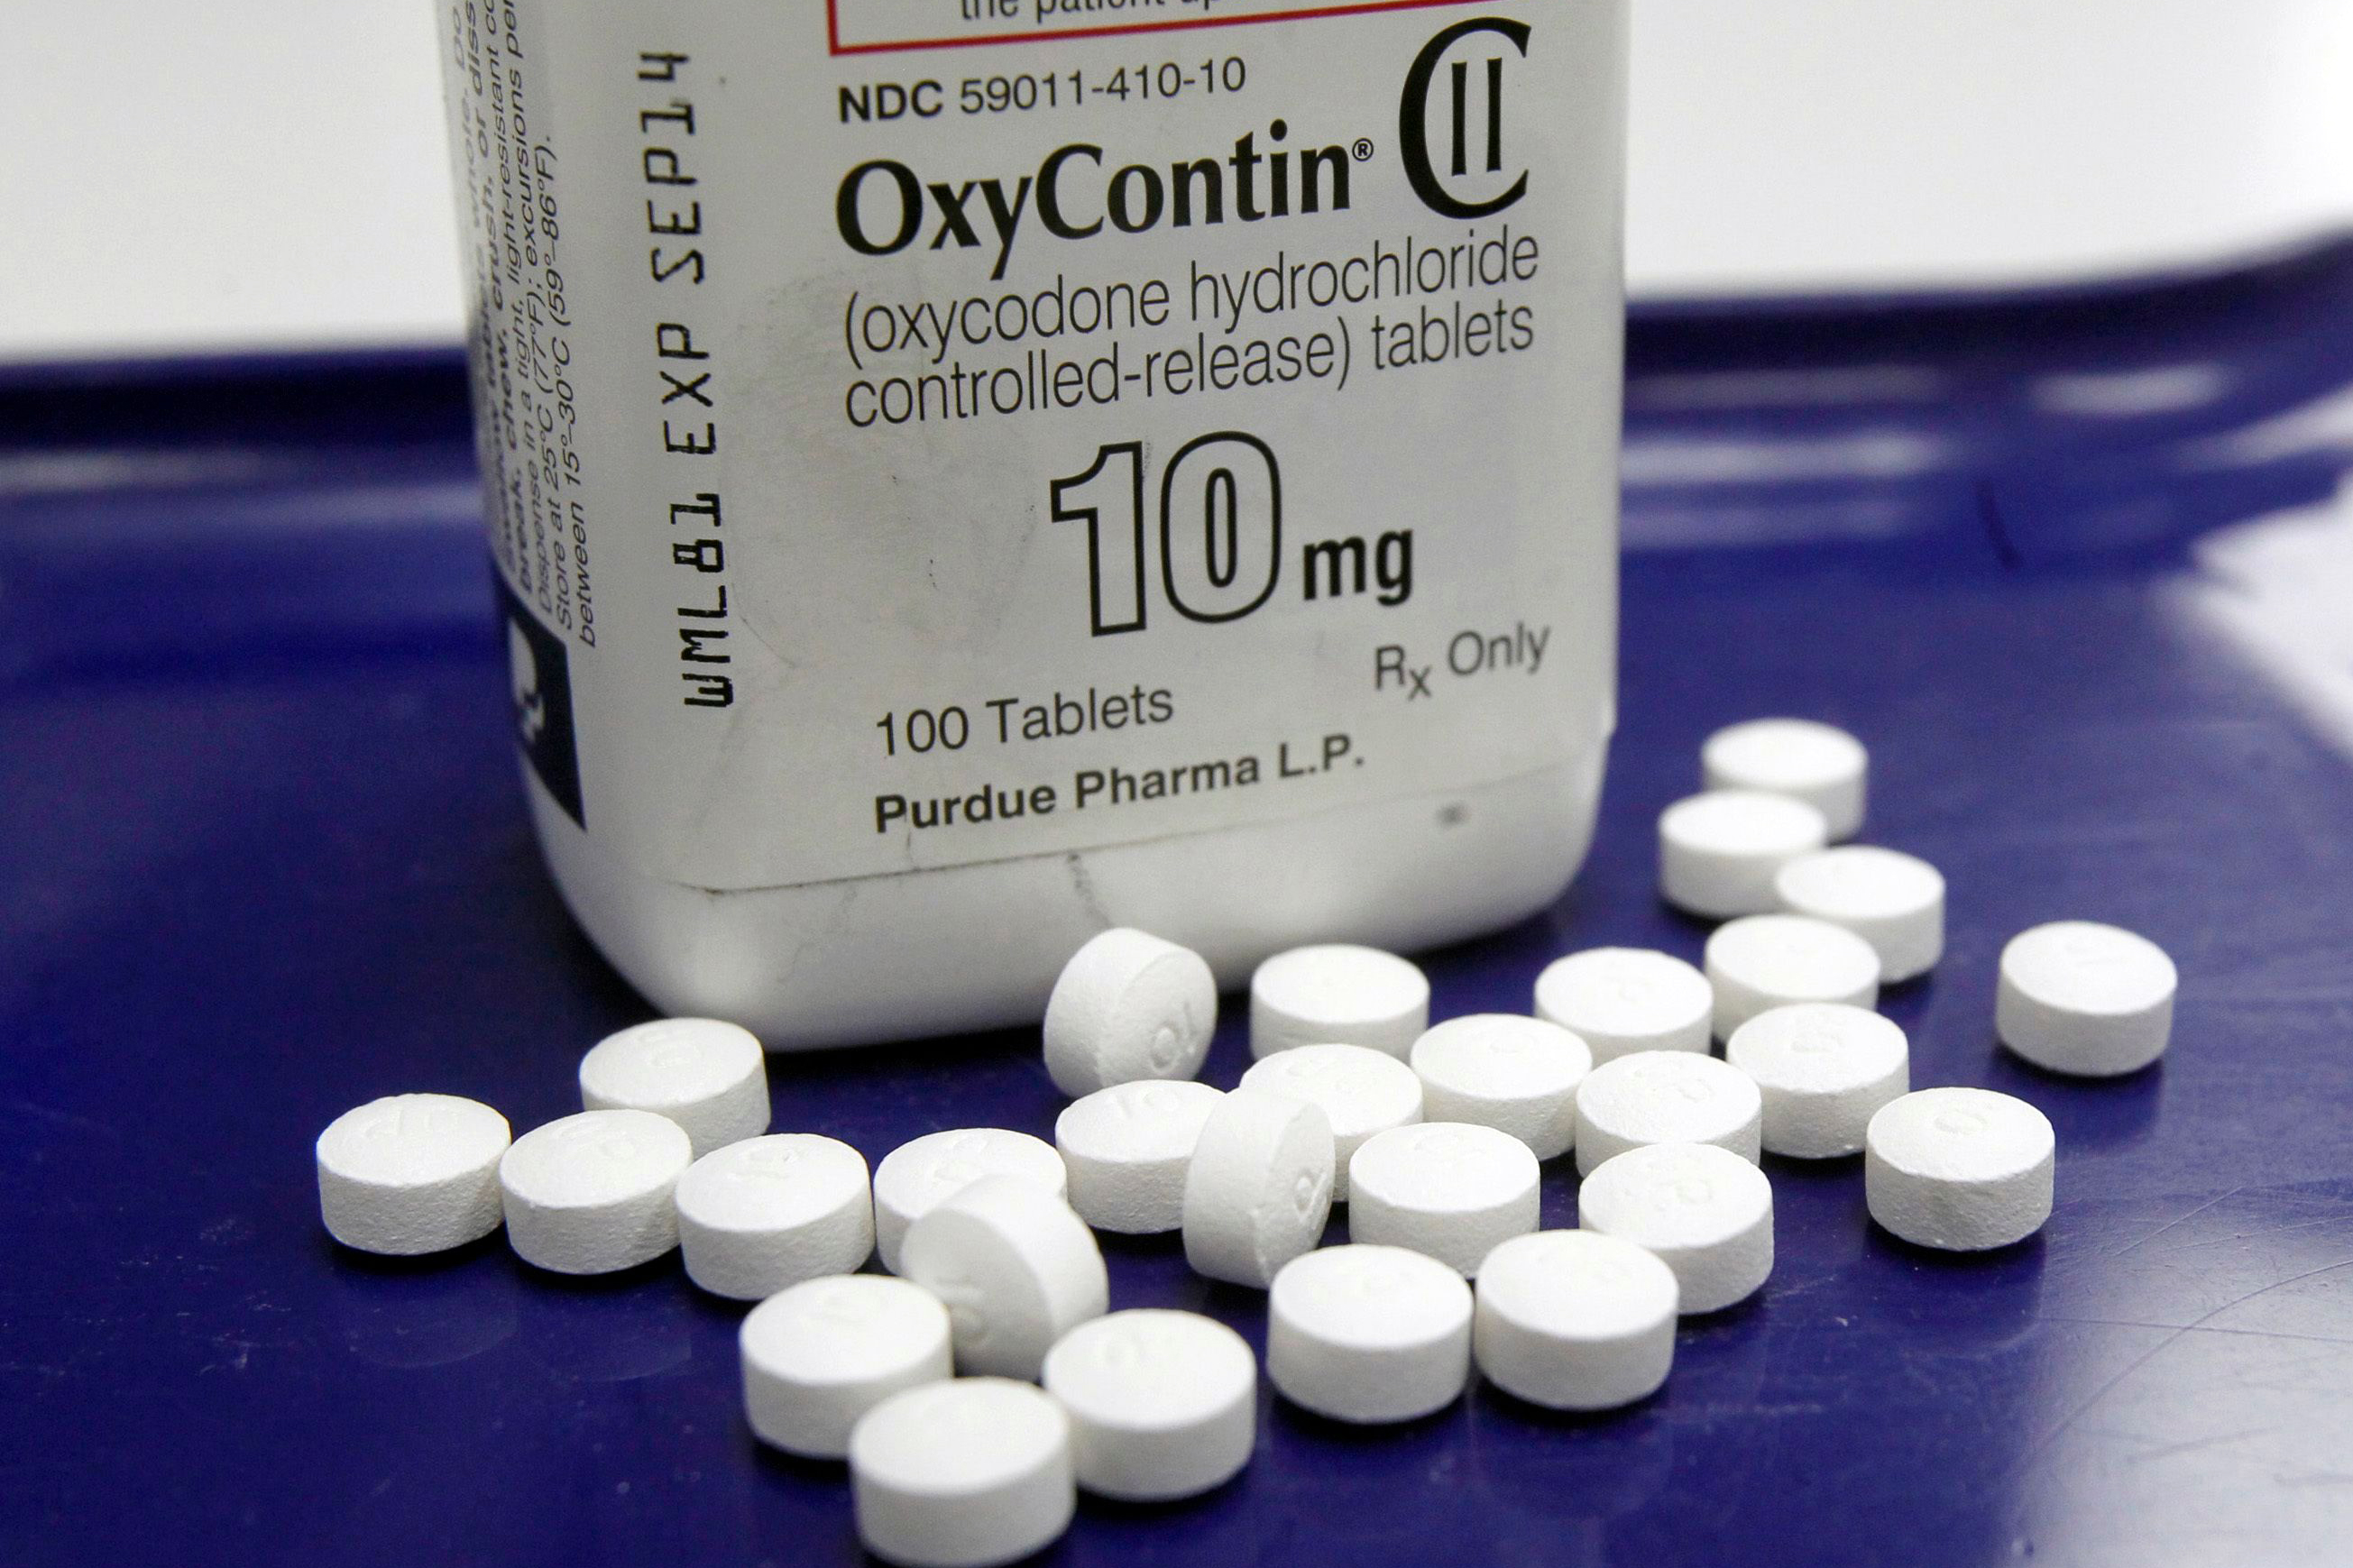 Lawsuit: Purdue Pharma Blamed OxyContin Abuse on 'Reckless Criminals'